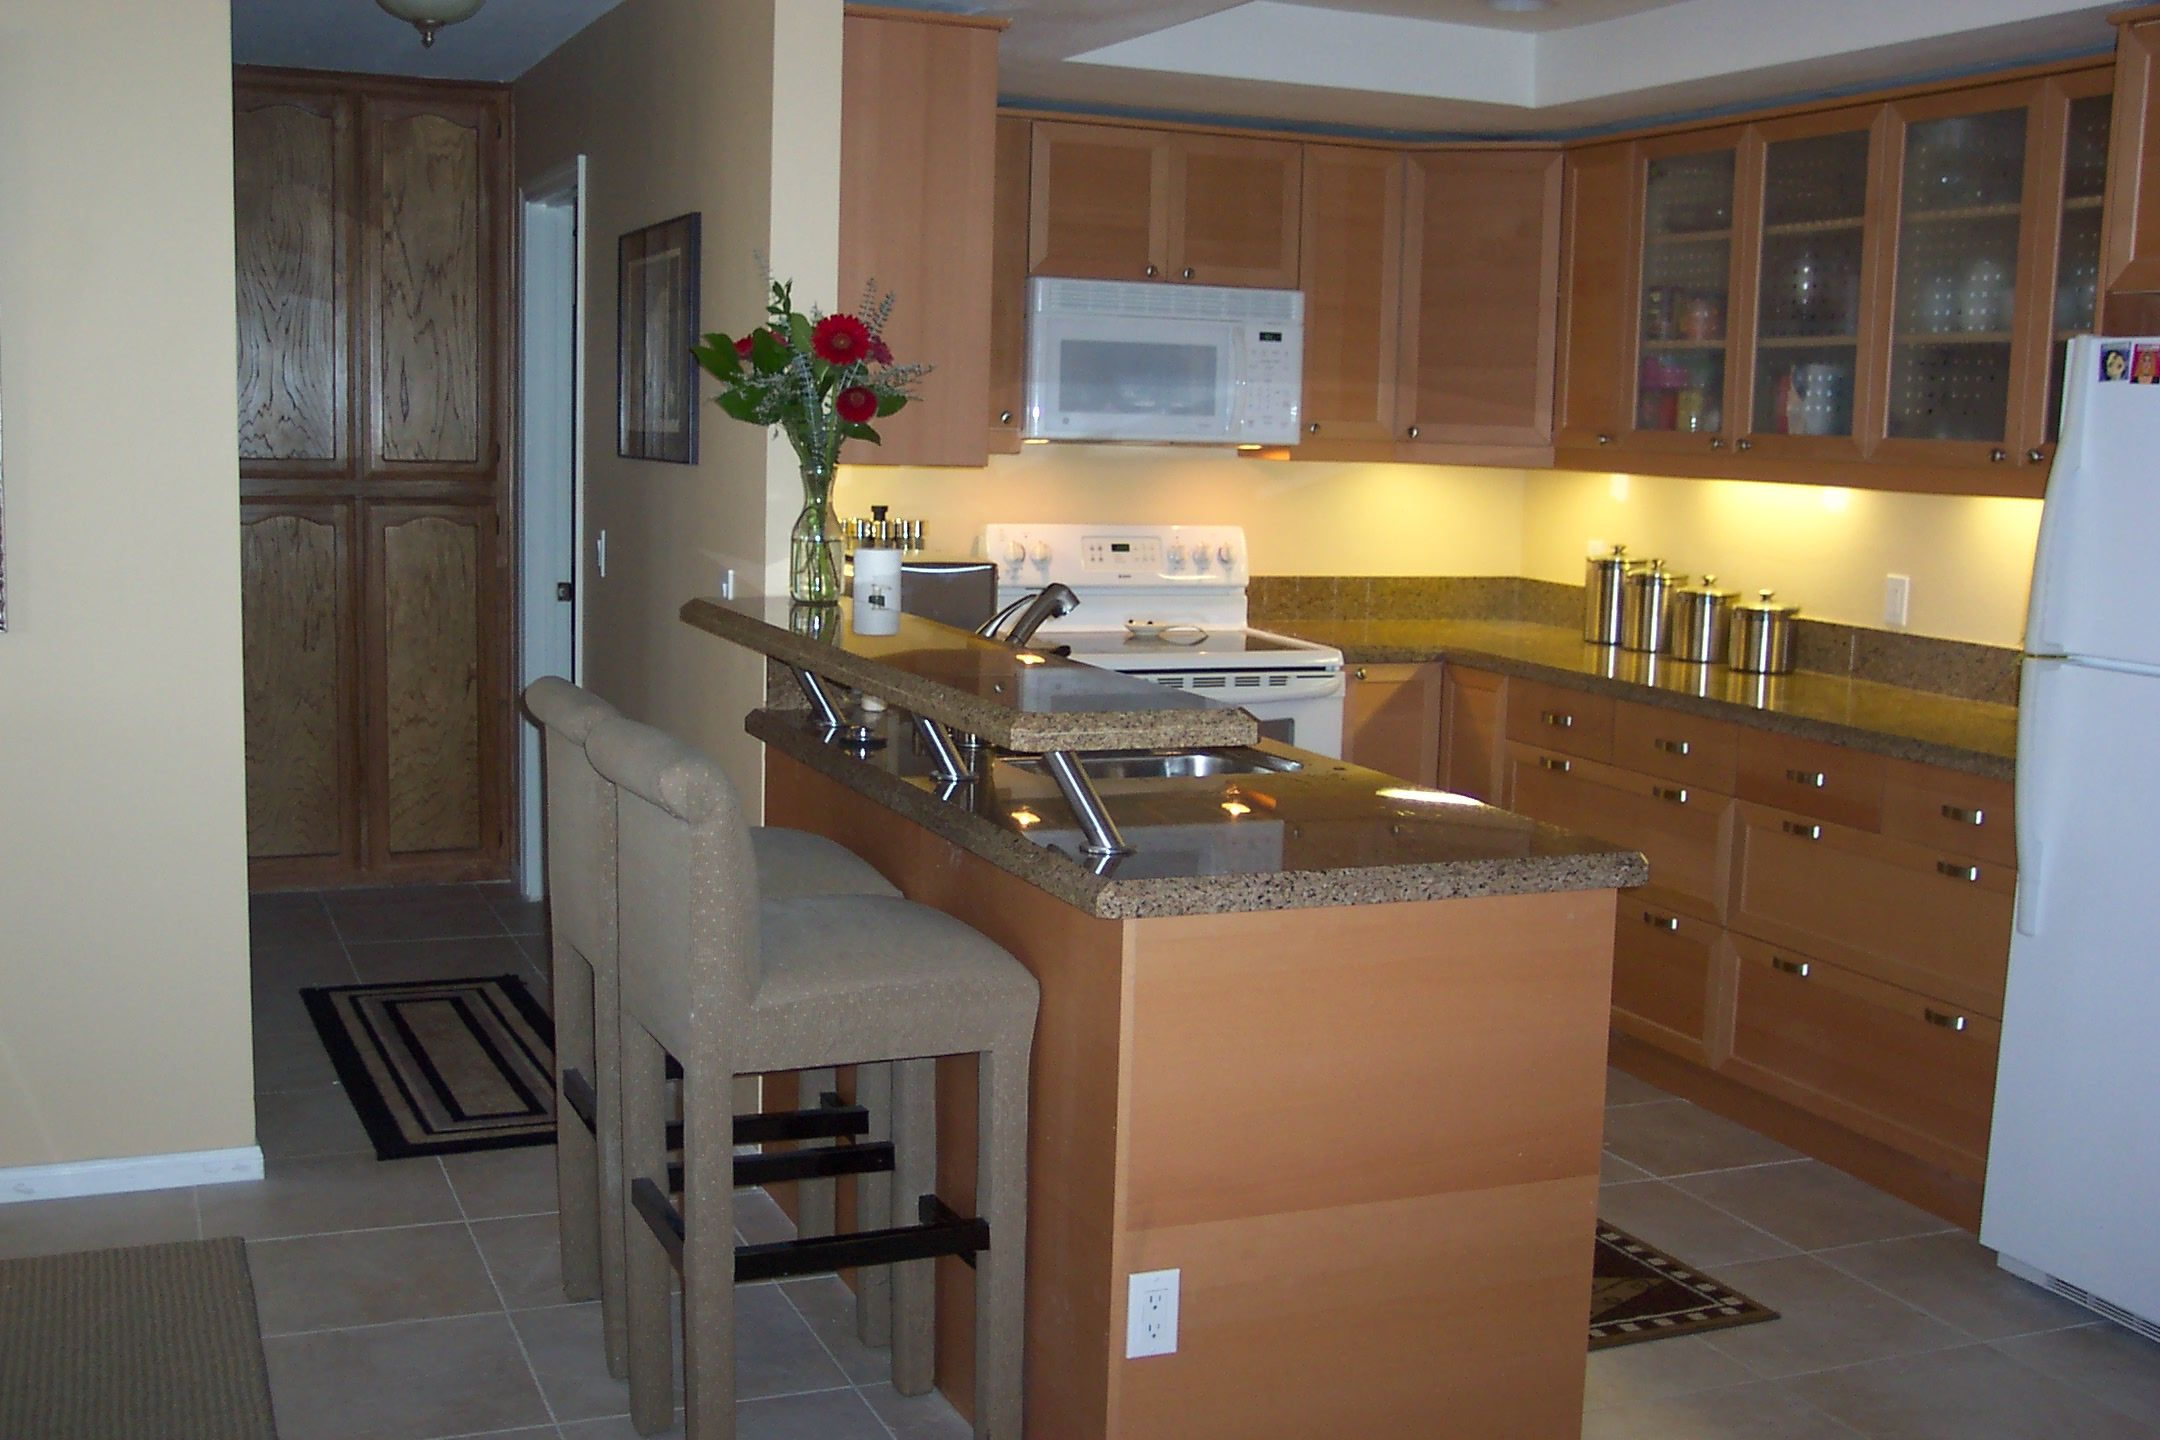 Small Kitchen Countertop Best Kitchen Counter Material With Modern Two Tier Kitchen Islands